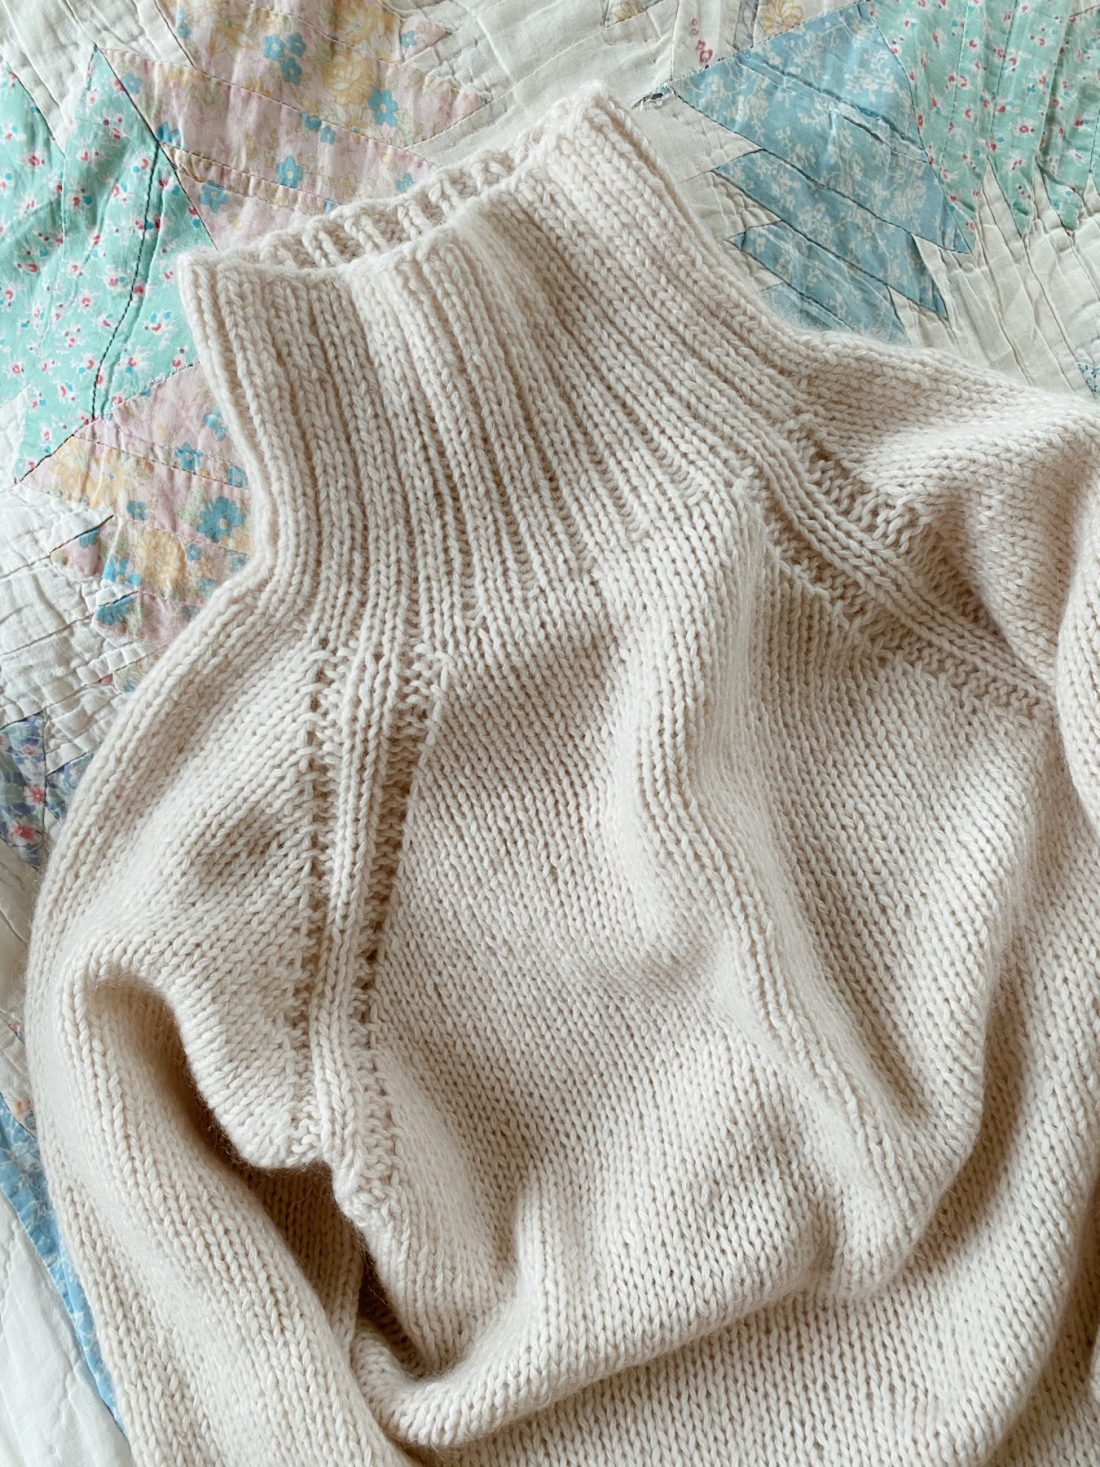 Rockpaperdresses, Cathrine Widunok Wichmand, Interview My favourite things knitwear